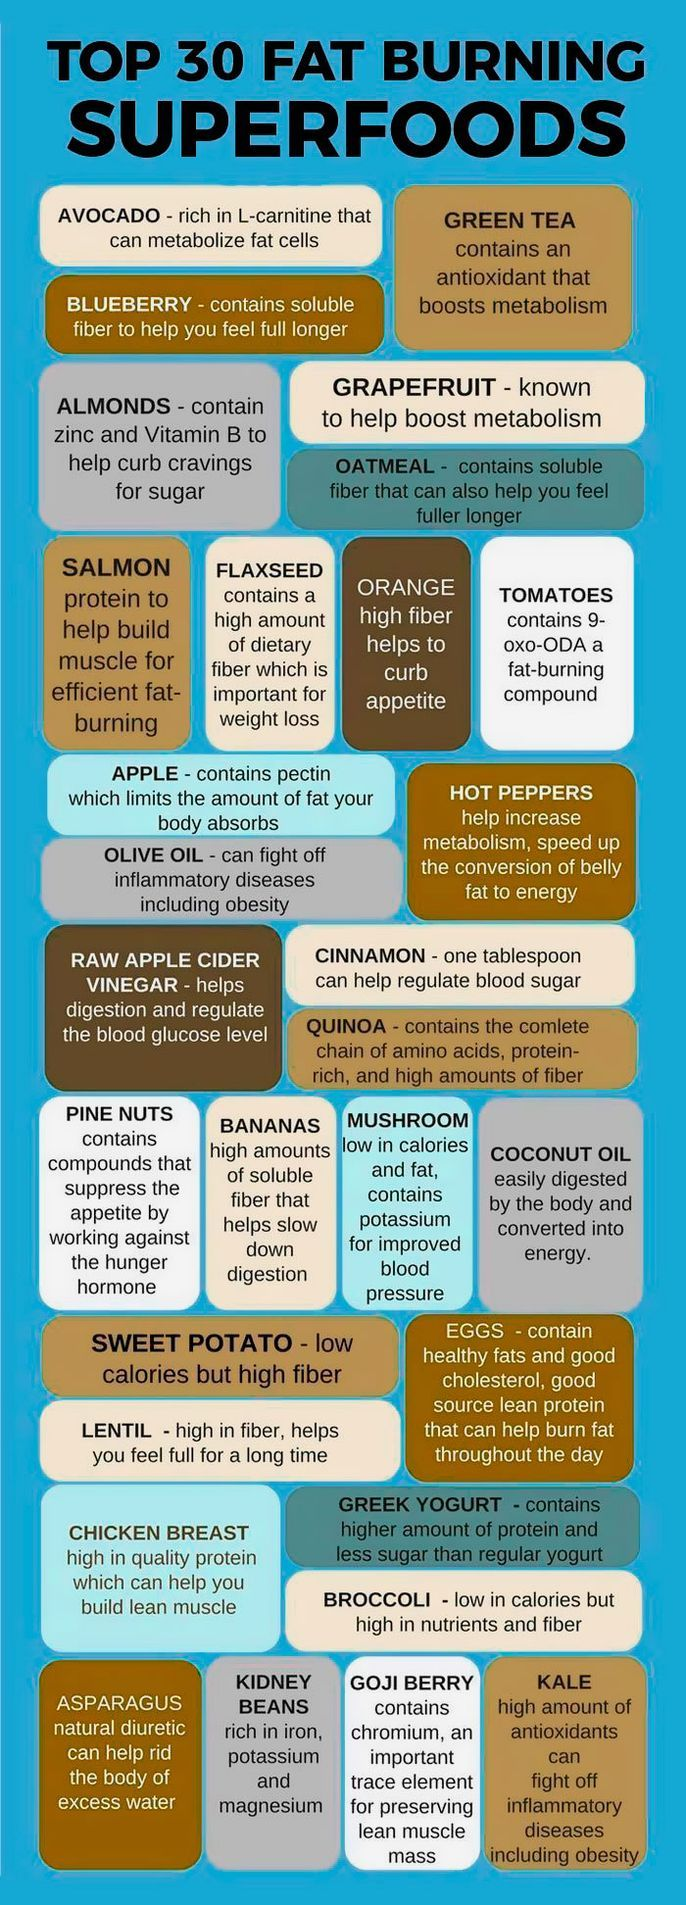 Top 30 fat-burning foods